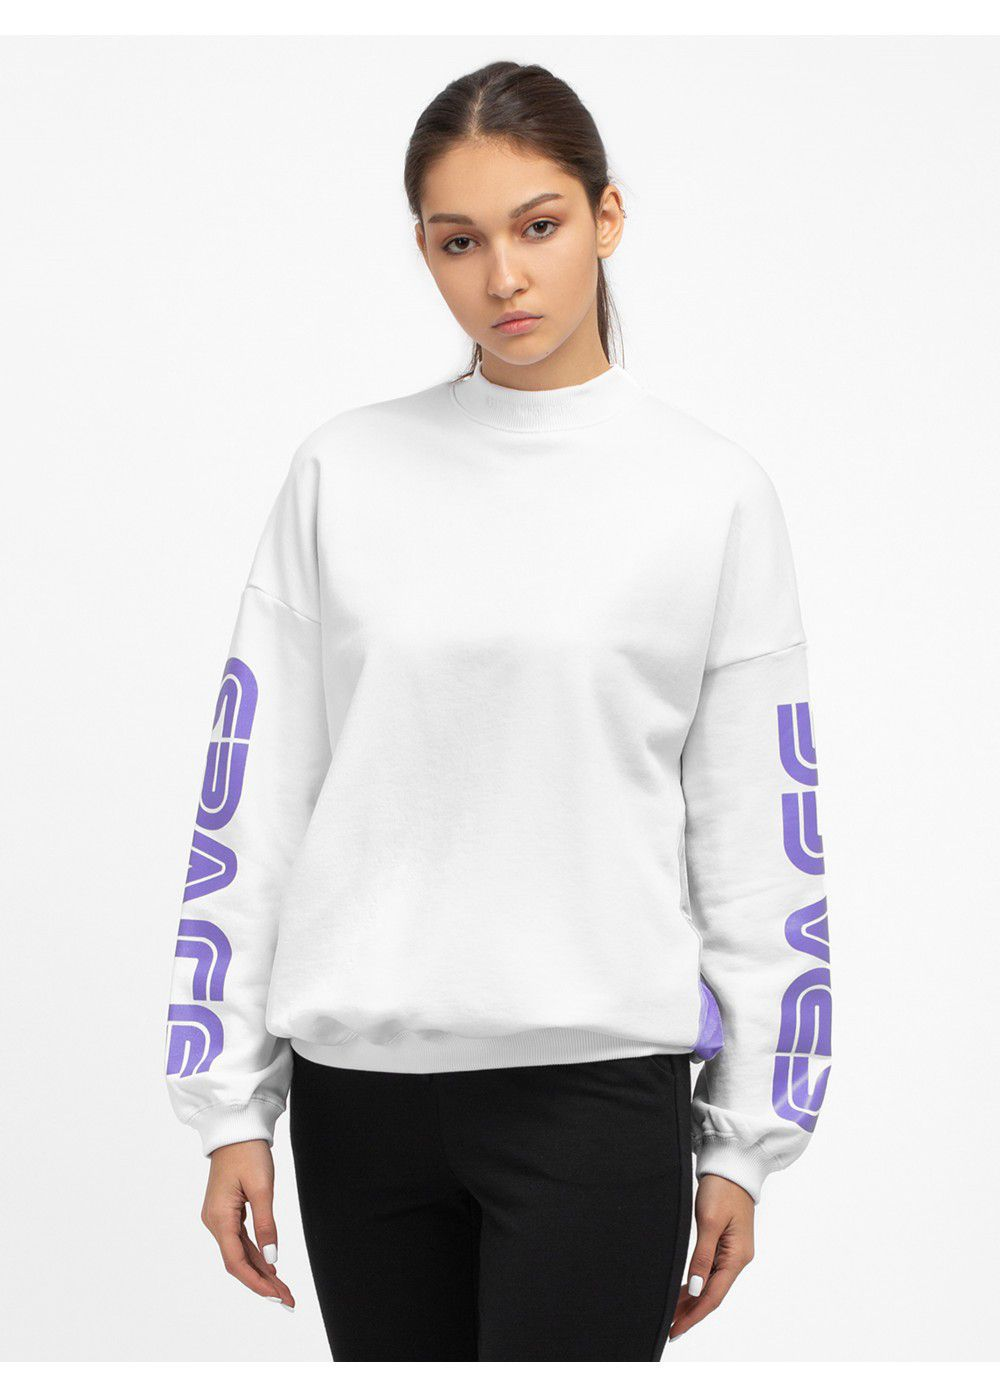 Give Me Space White Sweatshirt